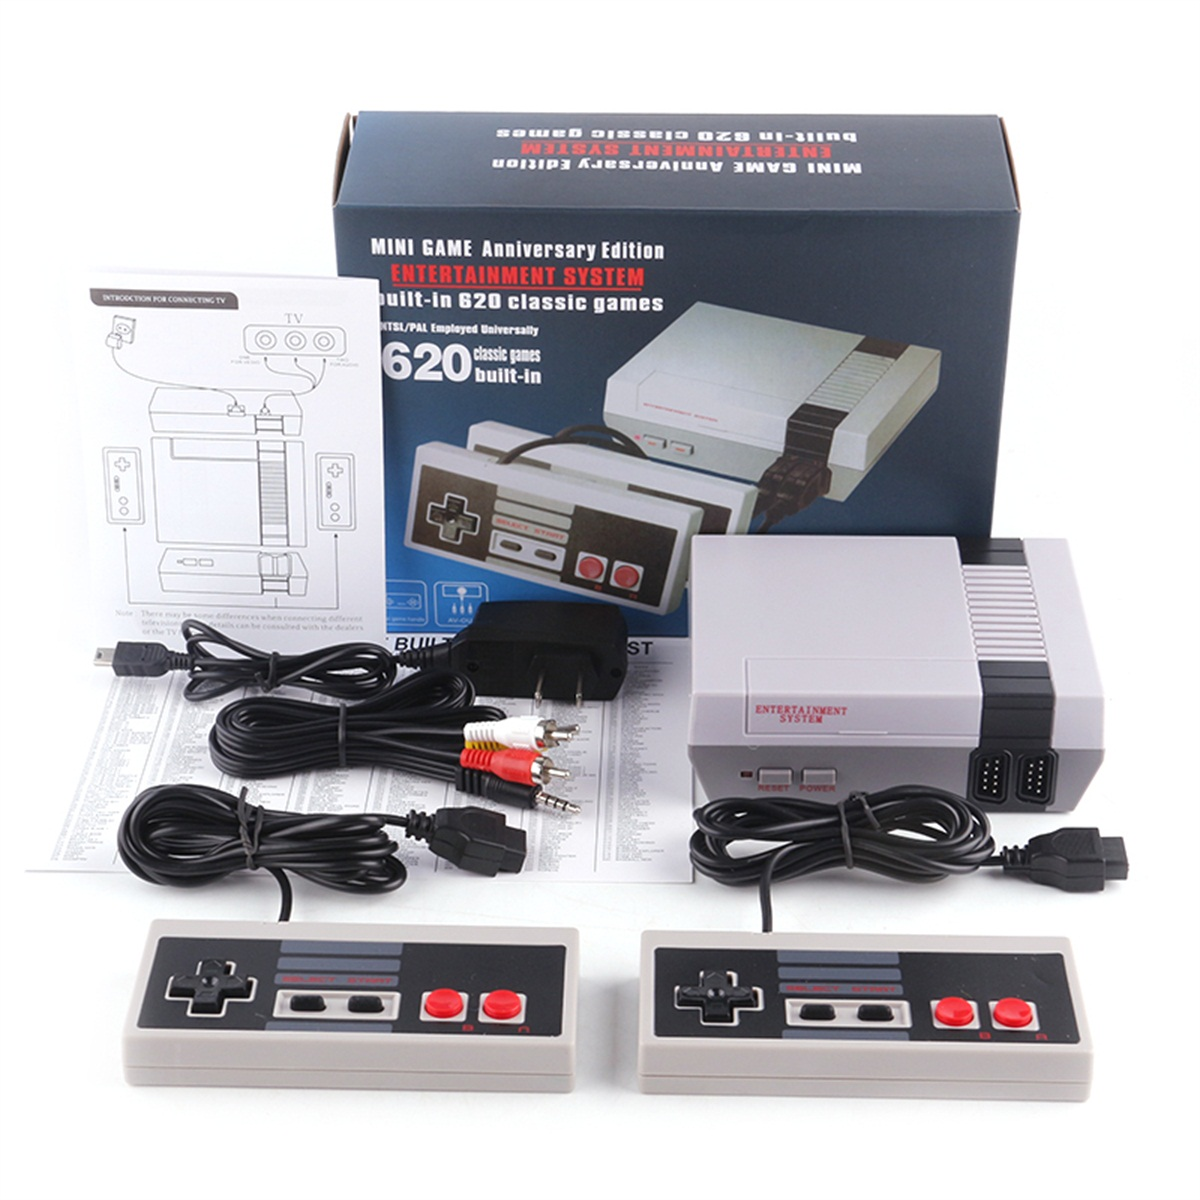 Video game console MINI NES Classic retro handheld game console 620 games Comes with original gamepad Family children's toys